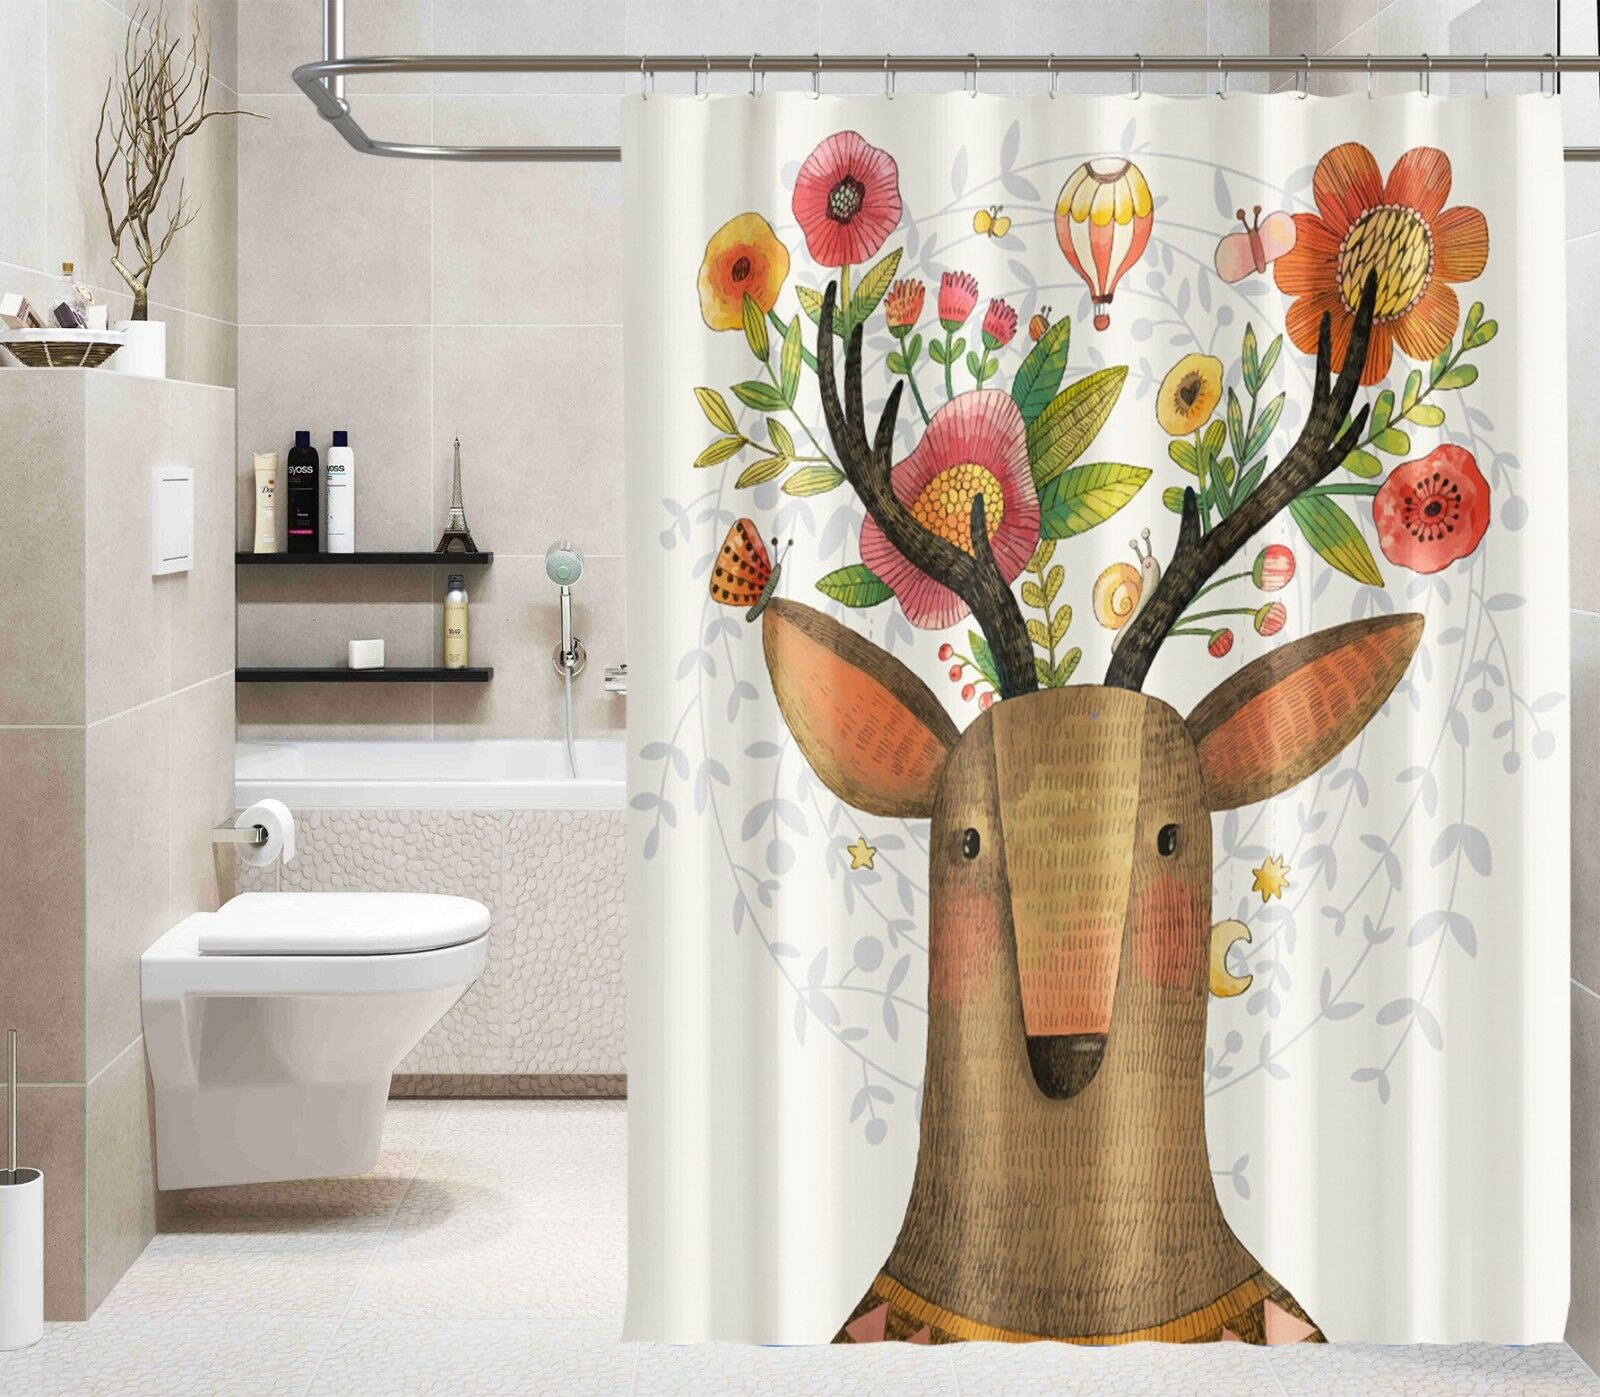 Home & Garden Gentle 3d Blumen Hirsch 89 Duschvorhang Wasserdicht Faser Bad Daheim Windows Toilette Curtains, Drapes & Valances